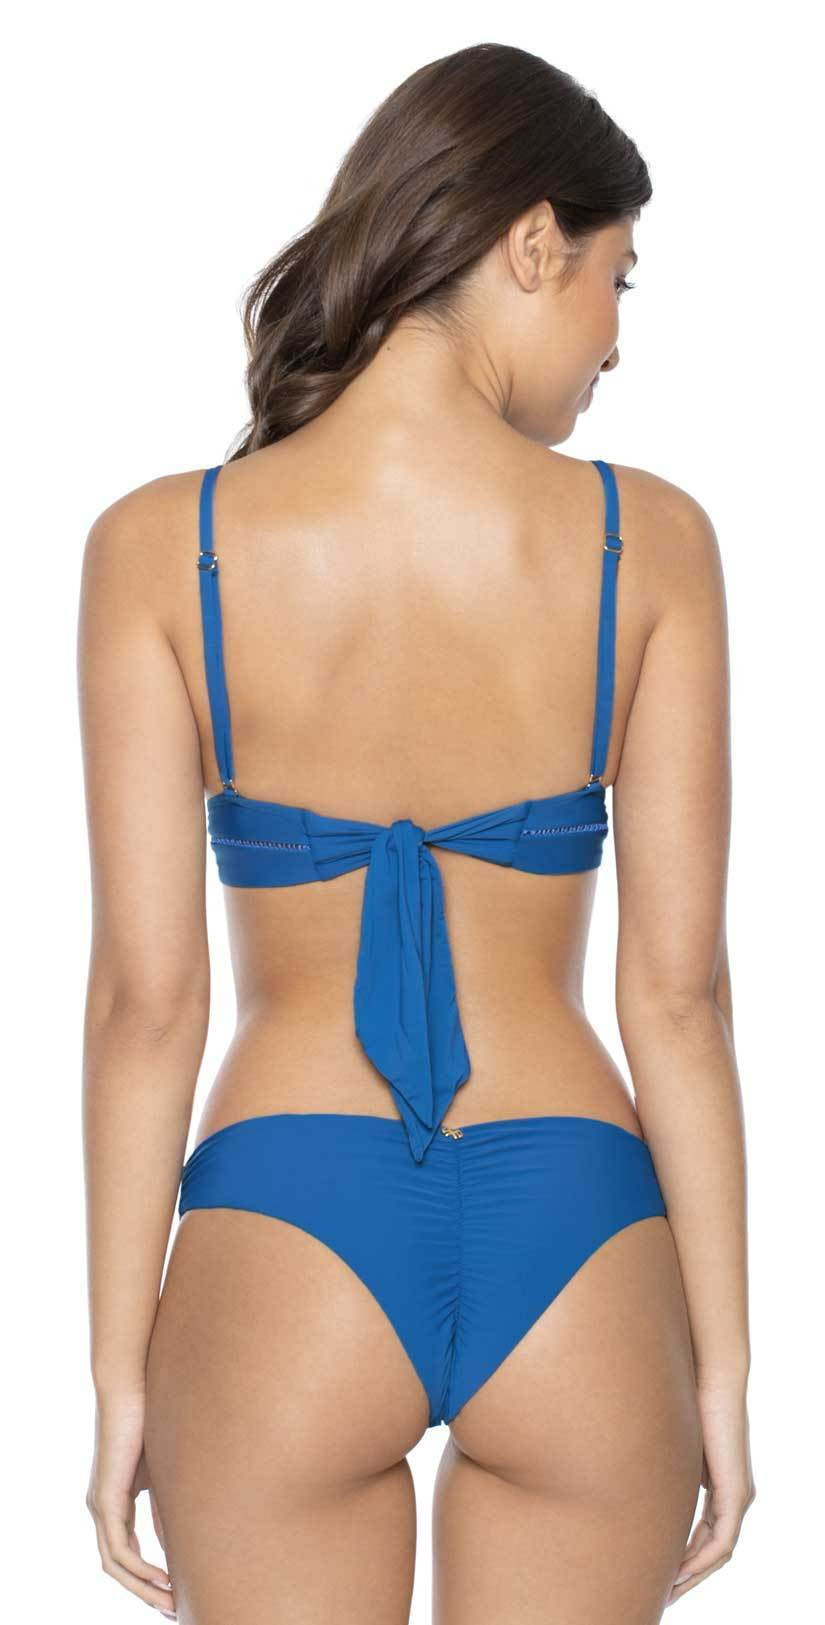 PilyQ Island Blue Basic Ruched Teeny Bikini Bottom: